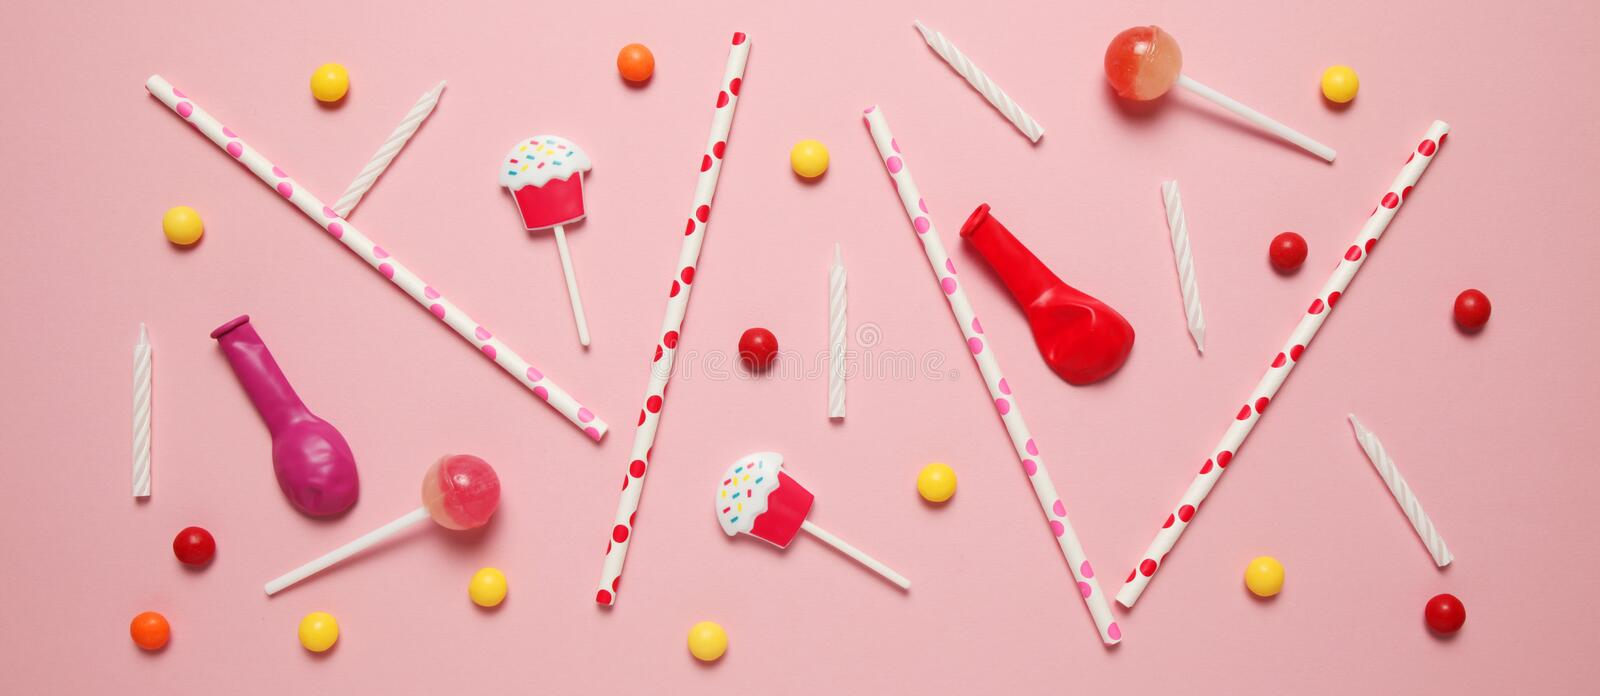 Minimal happy birthday decor for party. Sweet candy, balloons, straw stock images